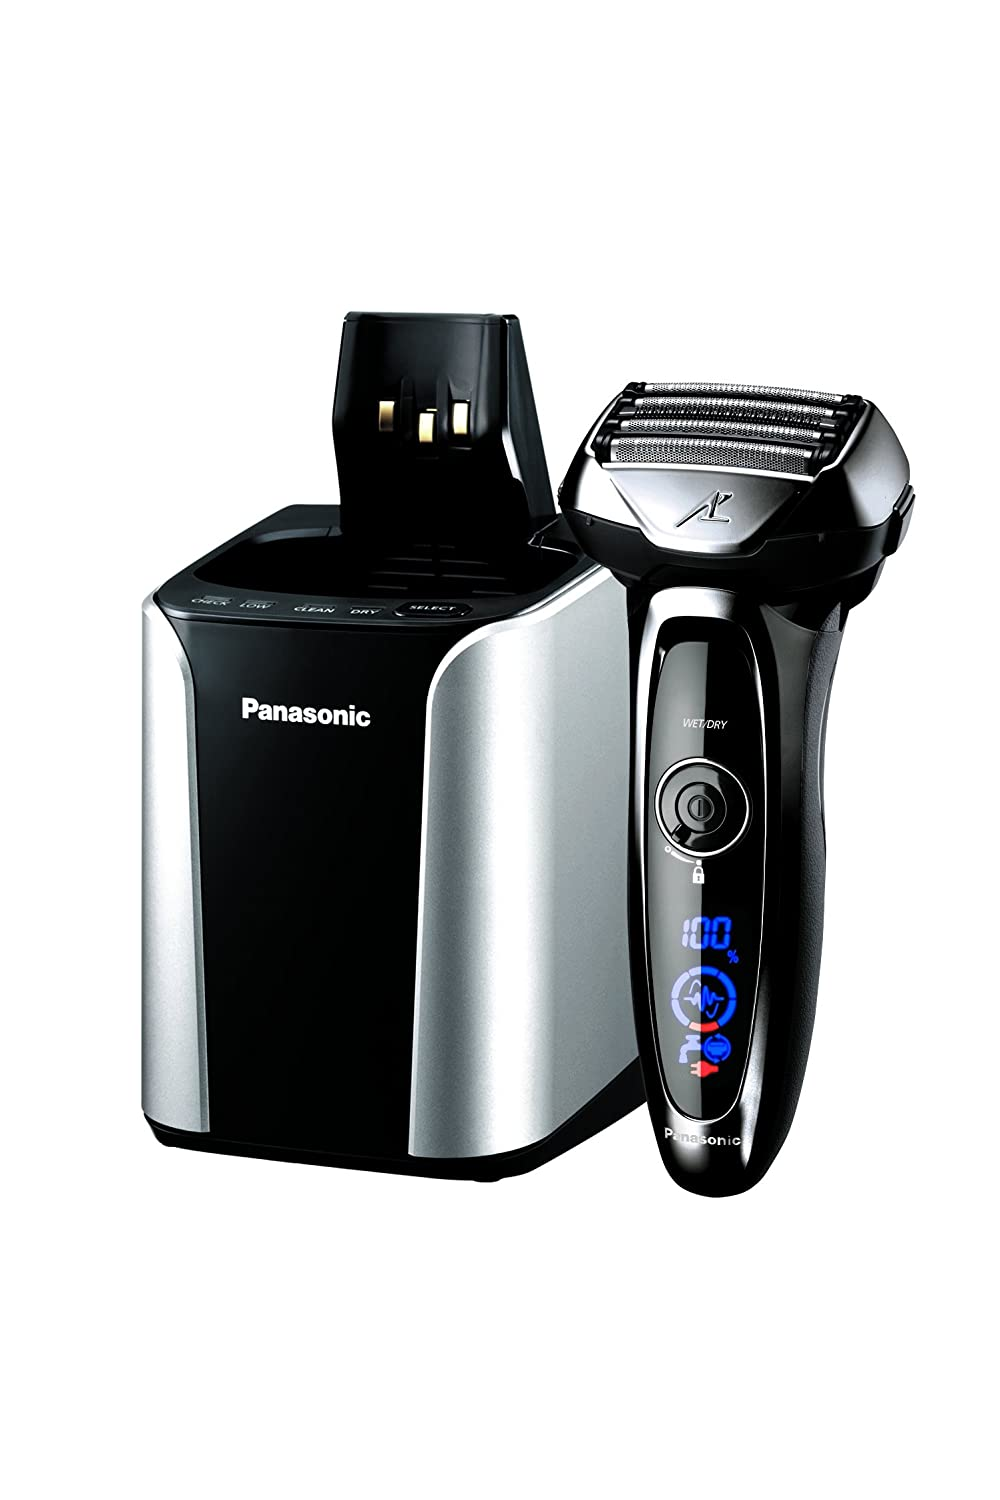 Panasonic ES-LV95-S Arc5 Electric Razor, Men's 5-Blade Cordless with Shave Sensor Technology and Wet/Dry Convenience, Premium Automatic Clean & Charge Station Included